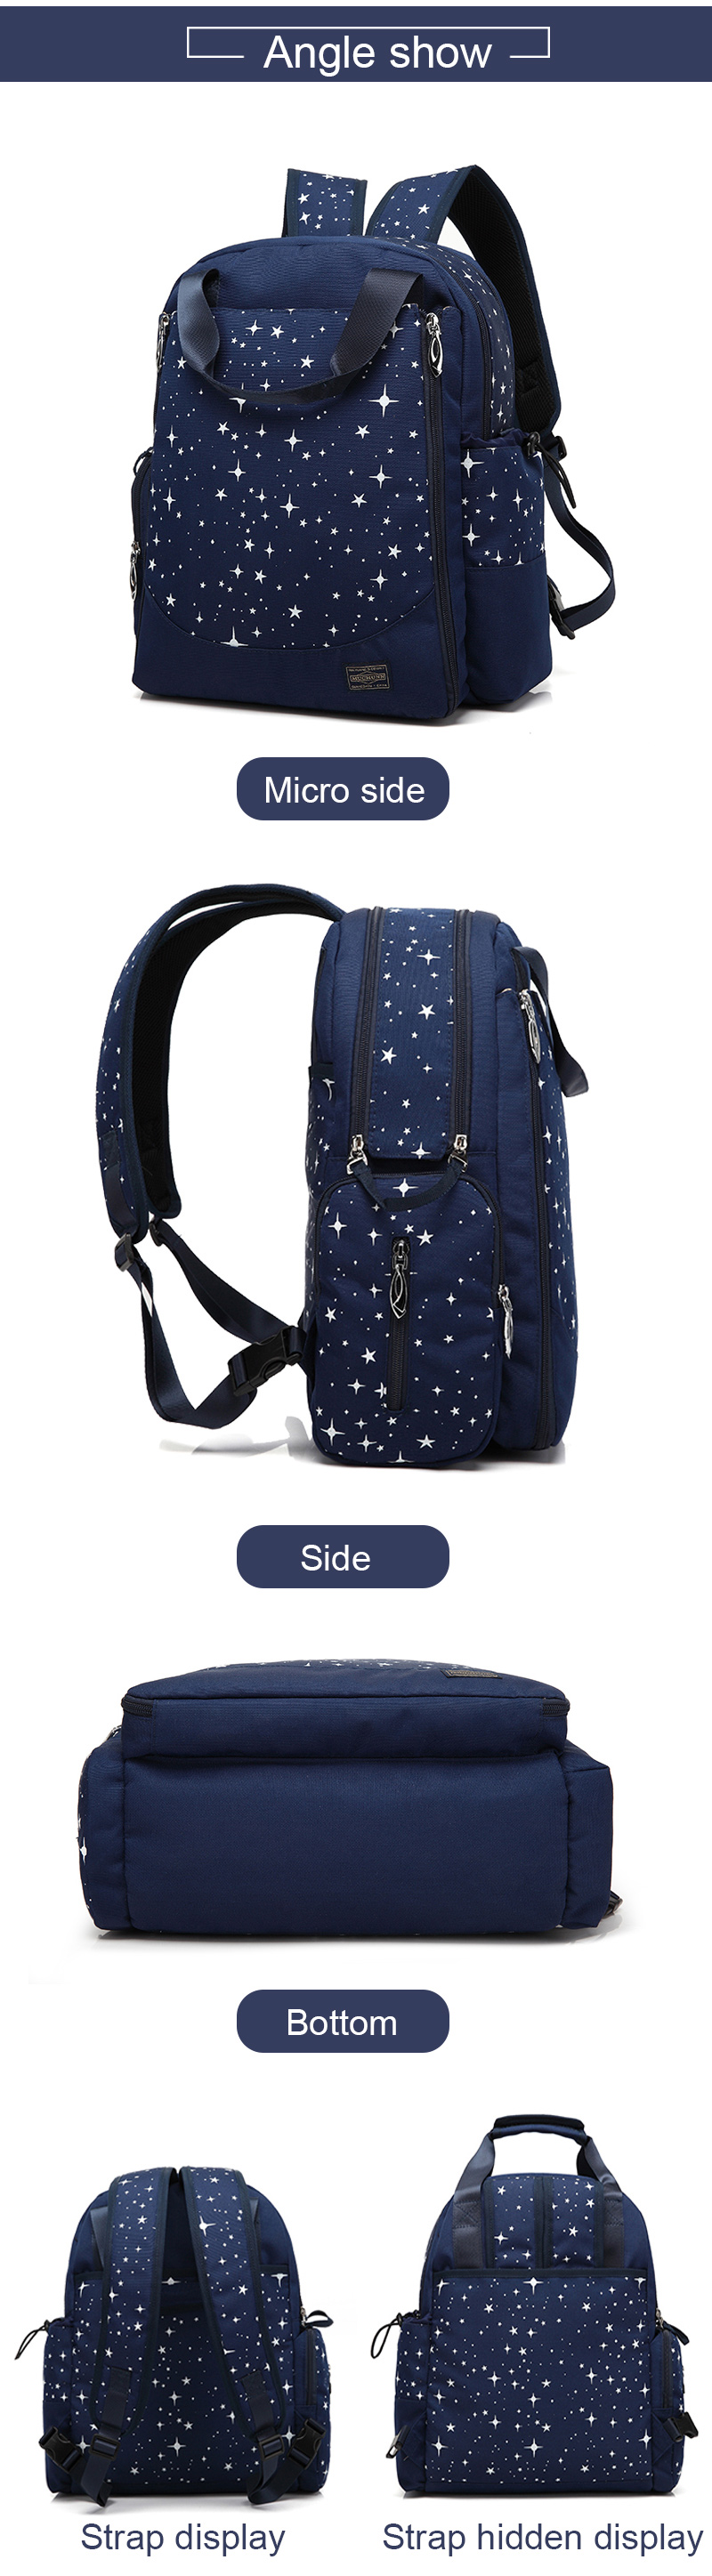 a553352b94ee7 ... Diaper Bag Waterproof Mummy Maternity Travel Backpack Nappy Changing  Bags For Baby Care Organizer Fashion Wet ...